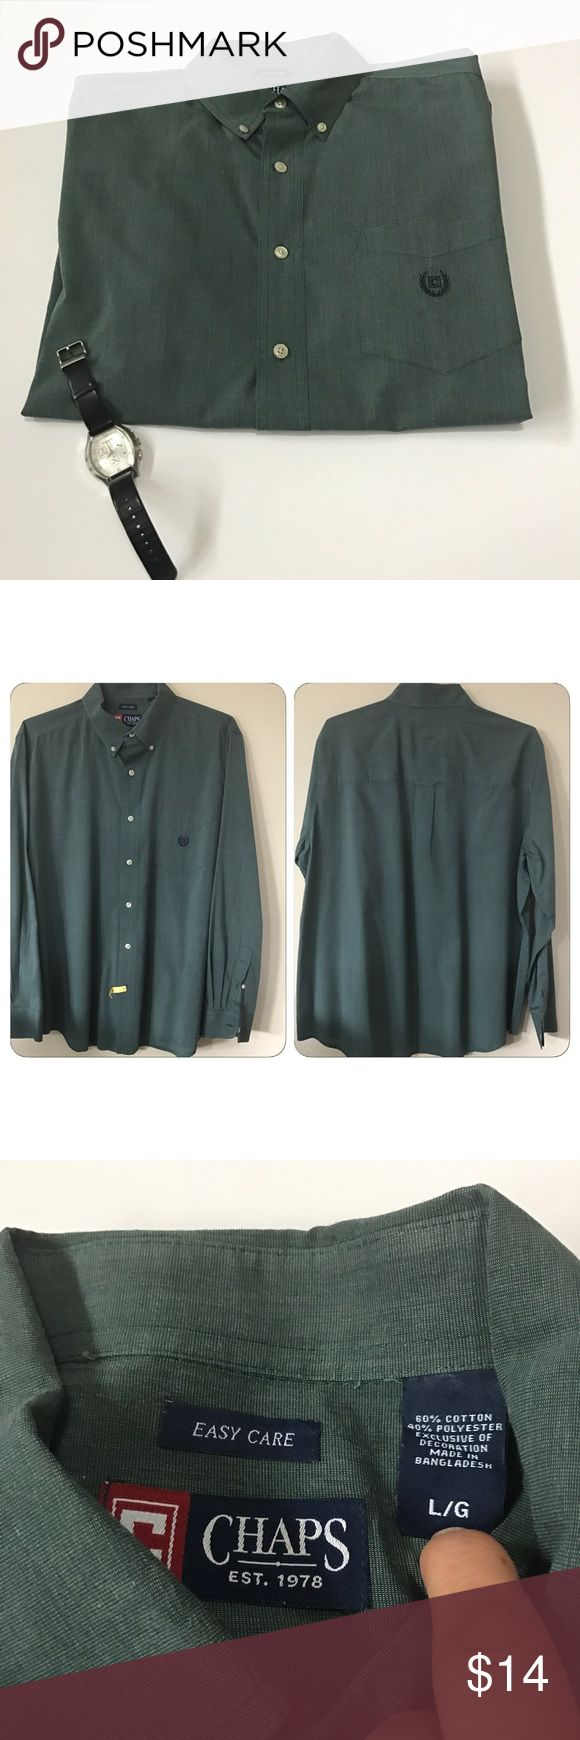 Chaps long sleeve button down shirt Chaps long sleeve button down shirt in hunter green. Has Chaps logo on front pocket. Buttons at collar to secure tie Chaps Shirts